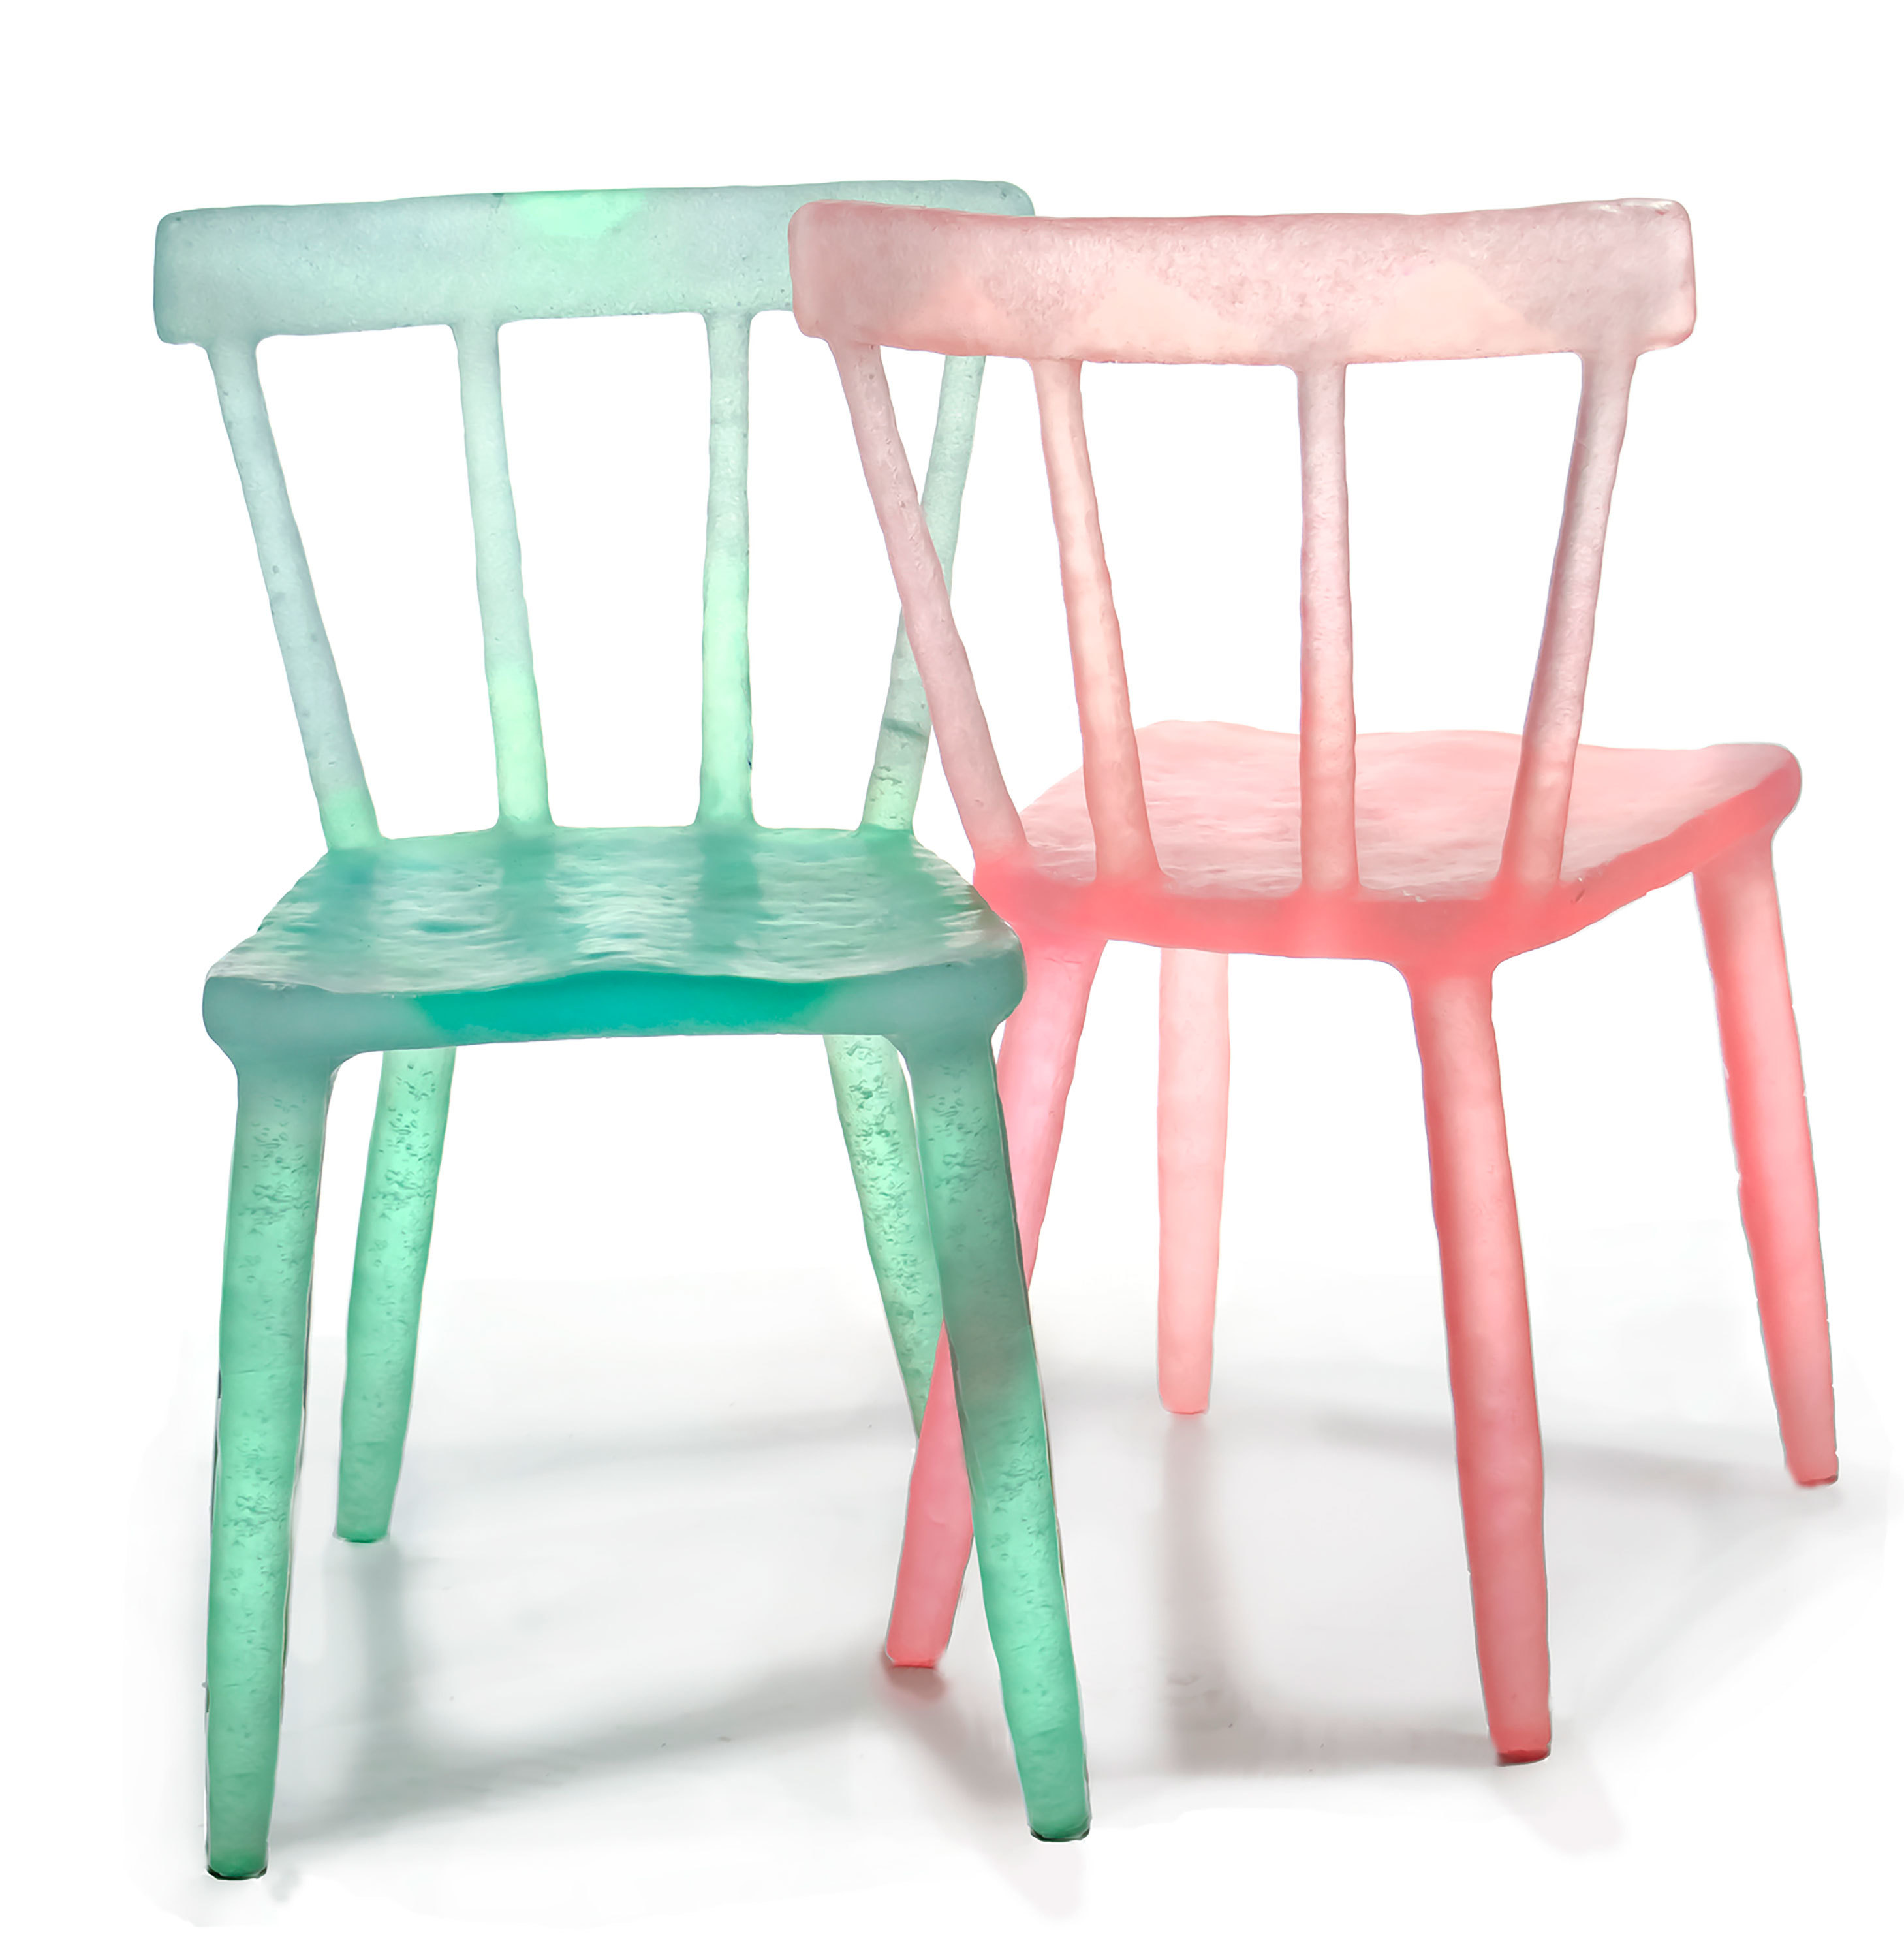 Glow+Chair+Duos